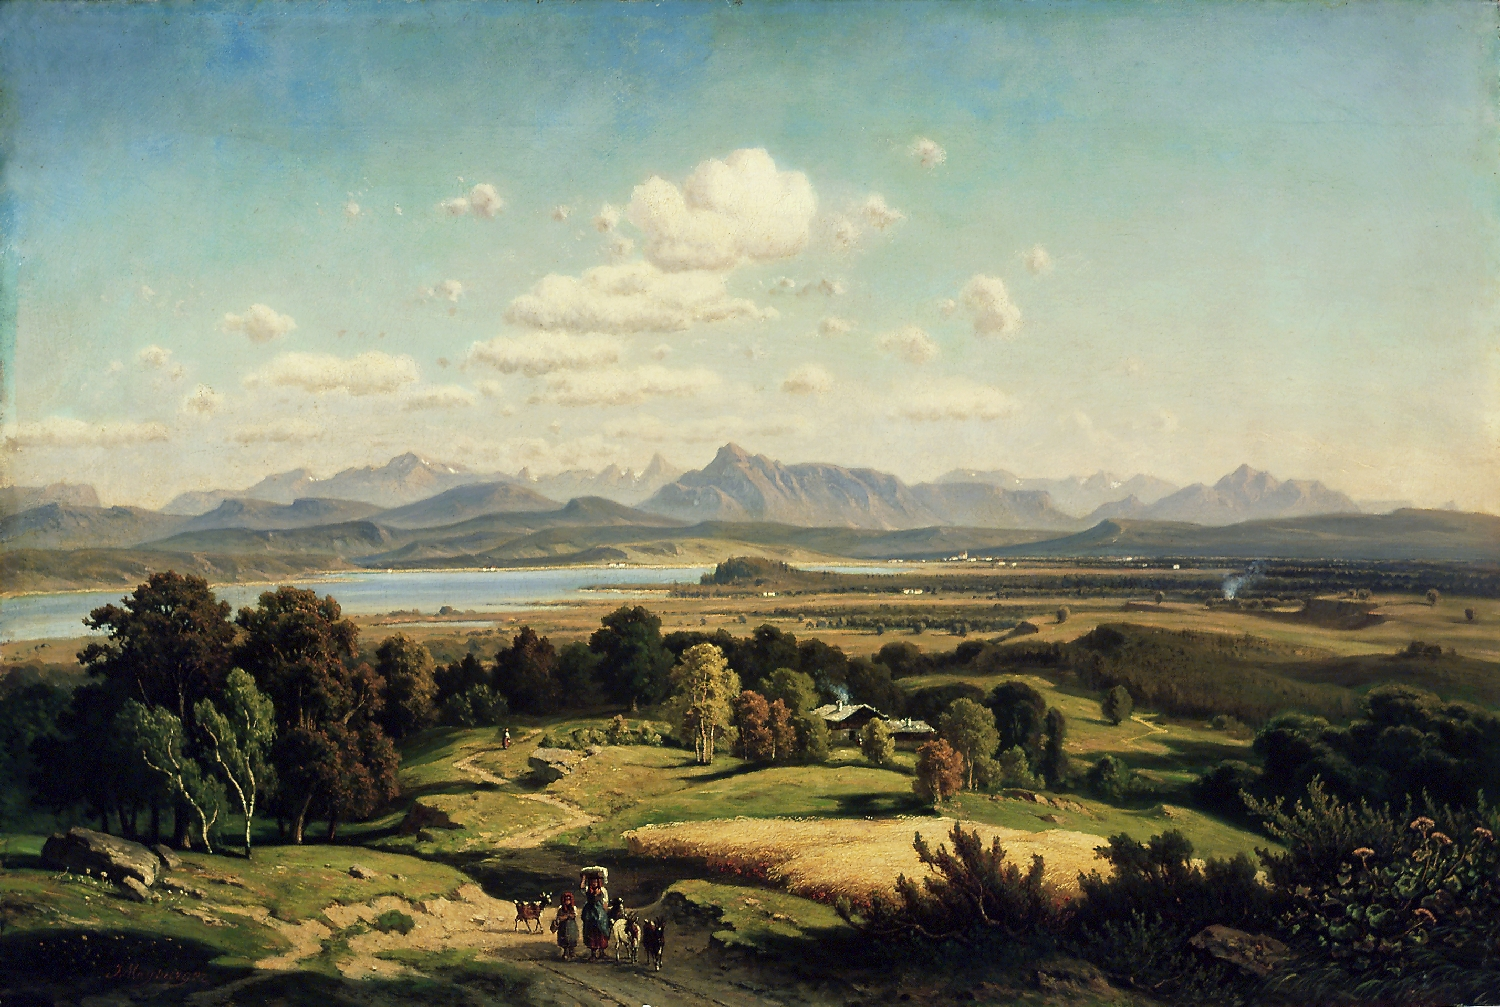 View from Tannberg over Wallersee towards the south, Josef Mayburger, 1870, inv. no. 169-50